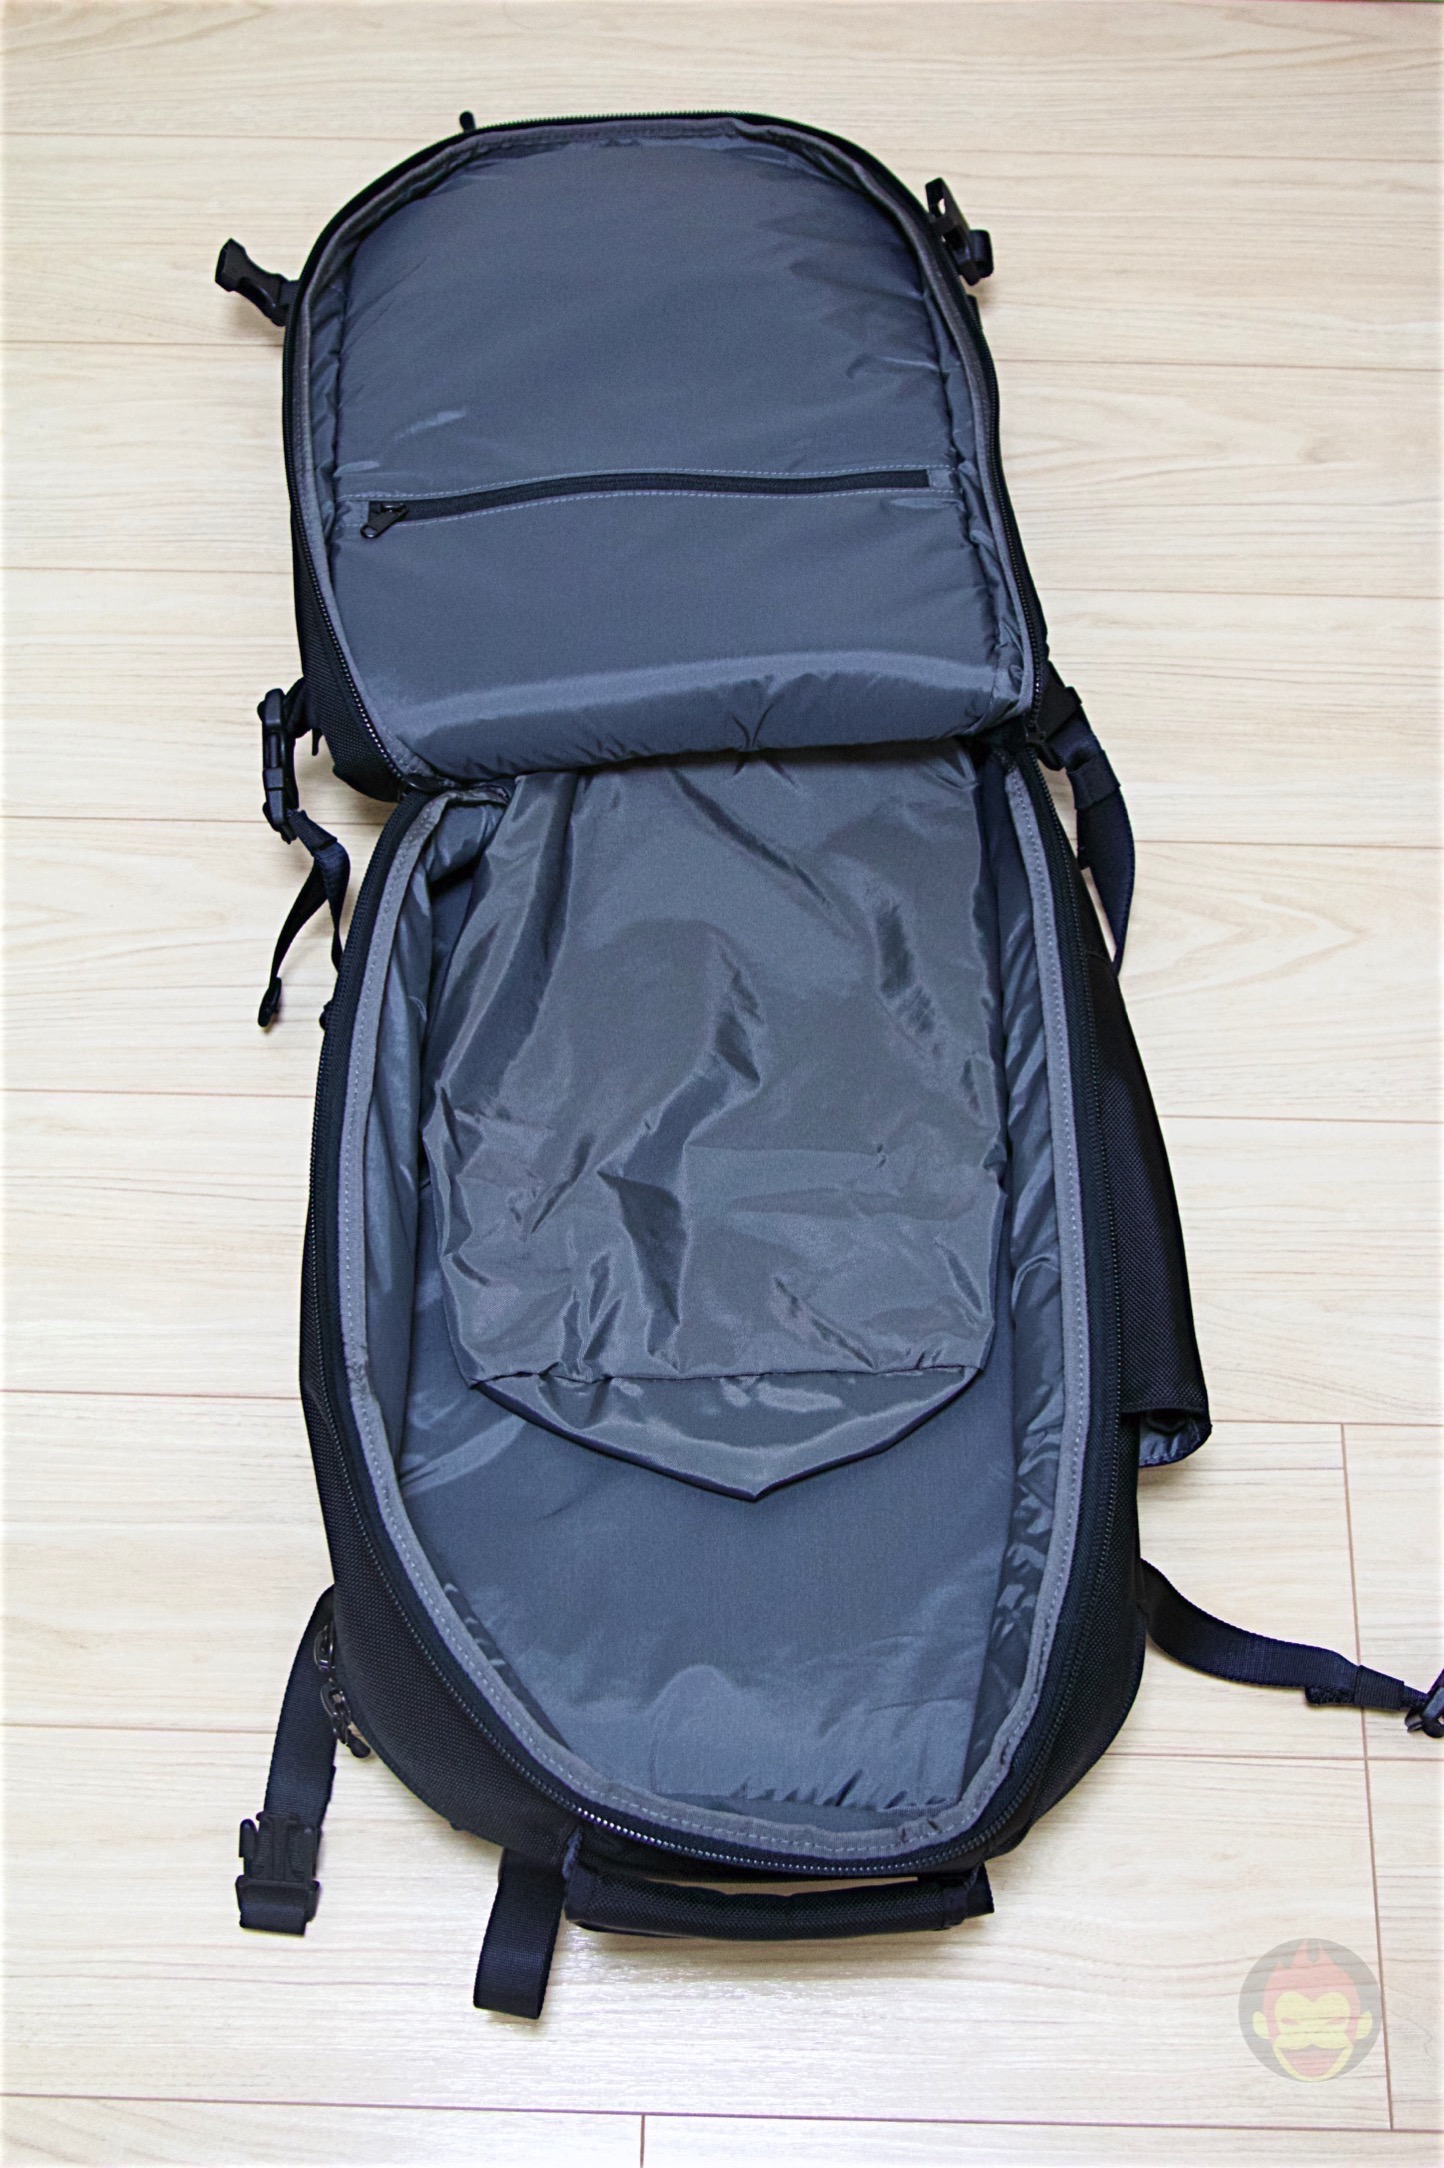 Aer-Travel-BackPack-on-Kickstarter-24.jpg